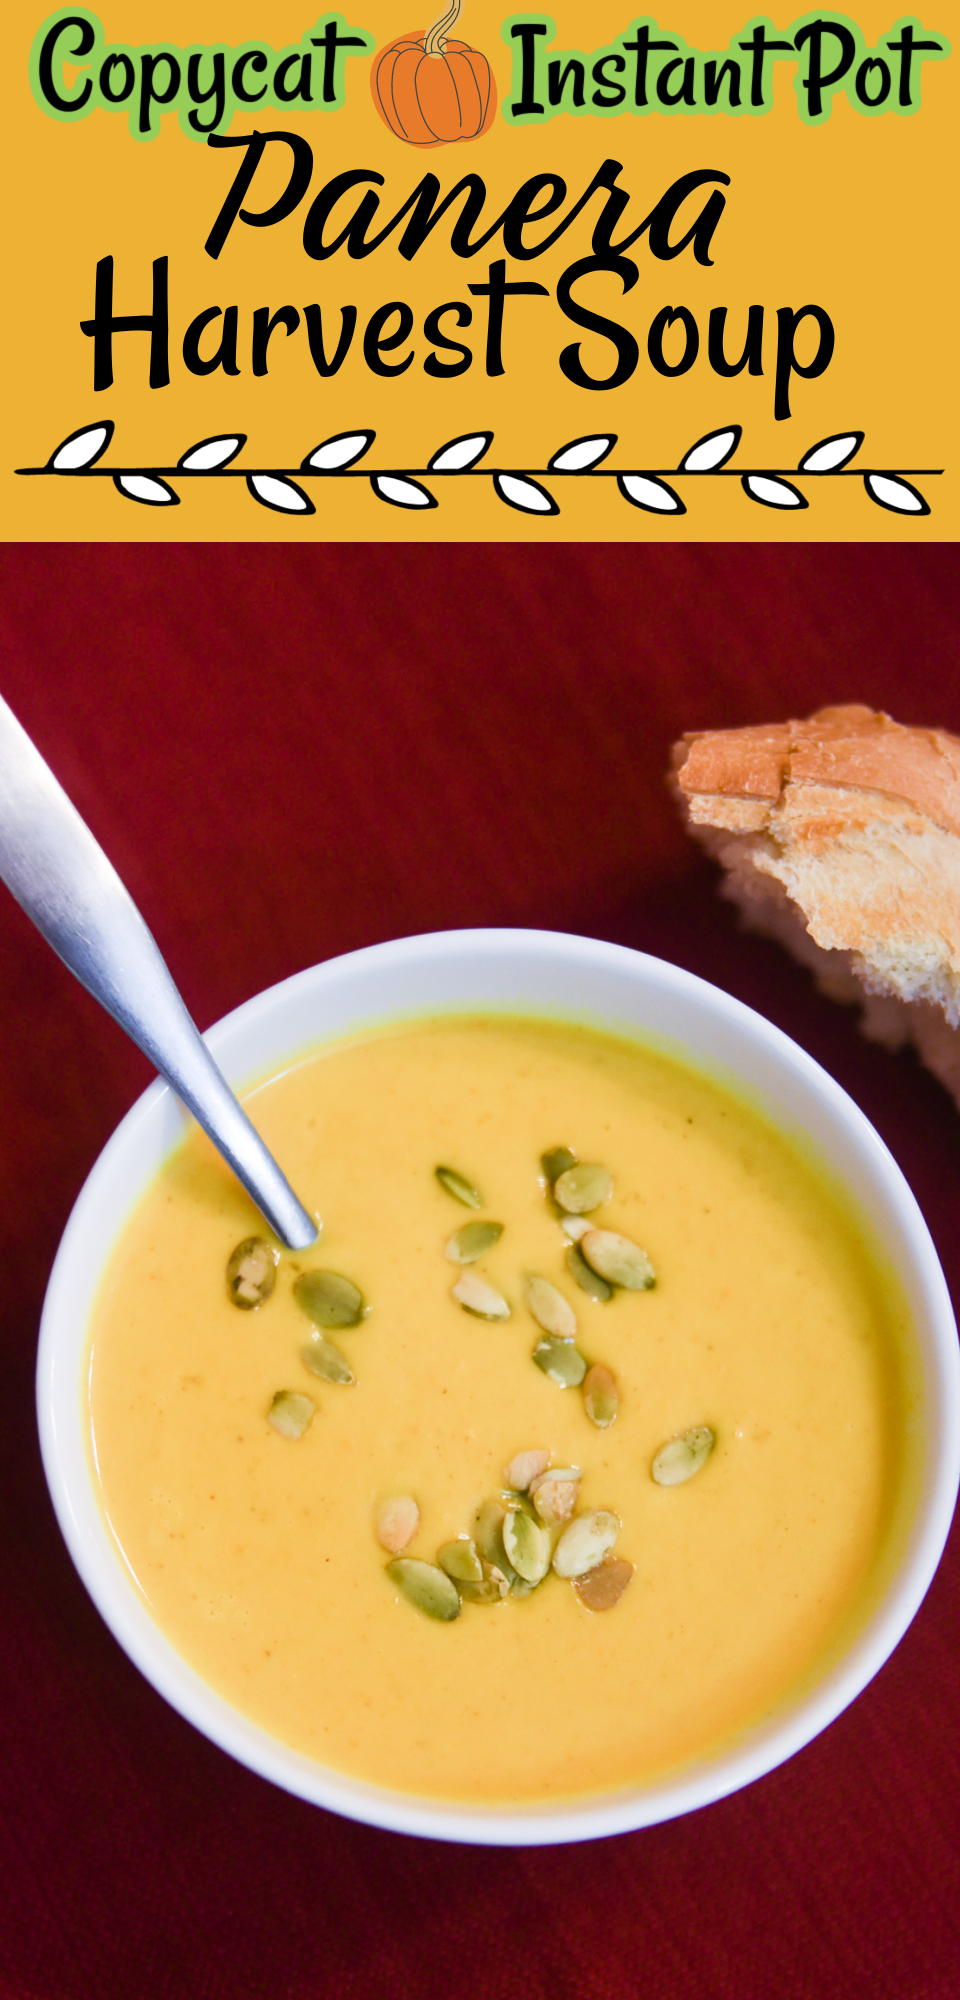 As the weather gets colder in the fall, nothing feels better than creamy Panera autumn squash soup. This Instant Pot soup recipe can be made in one pot for easy cleaning. Warm your soul and your home with Panera Harvest Soup. via @simplysidedishes89